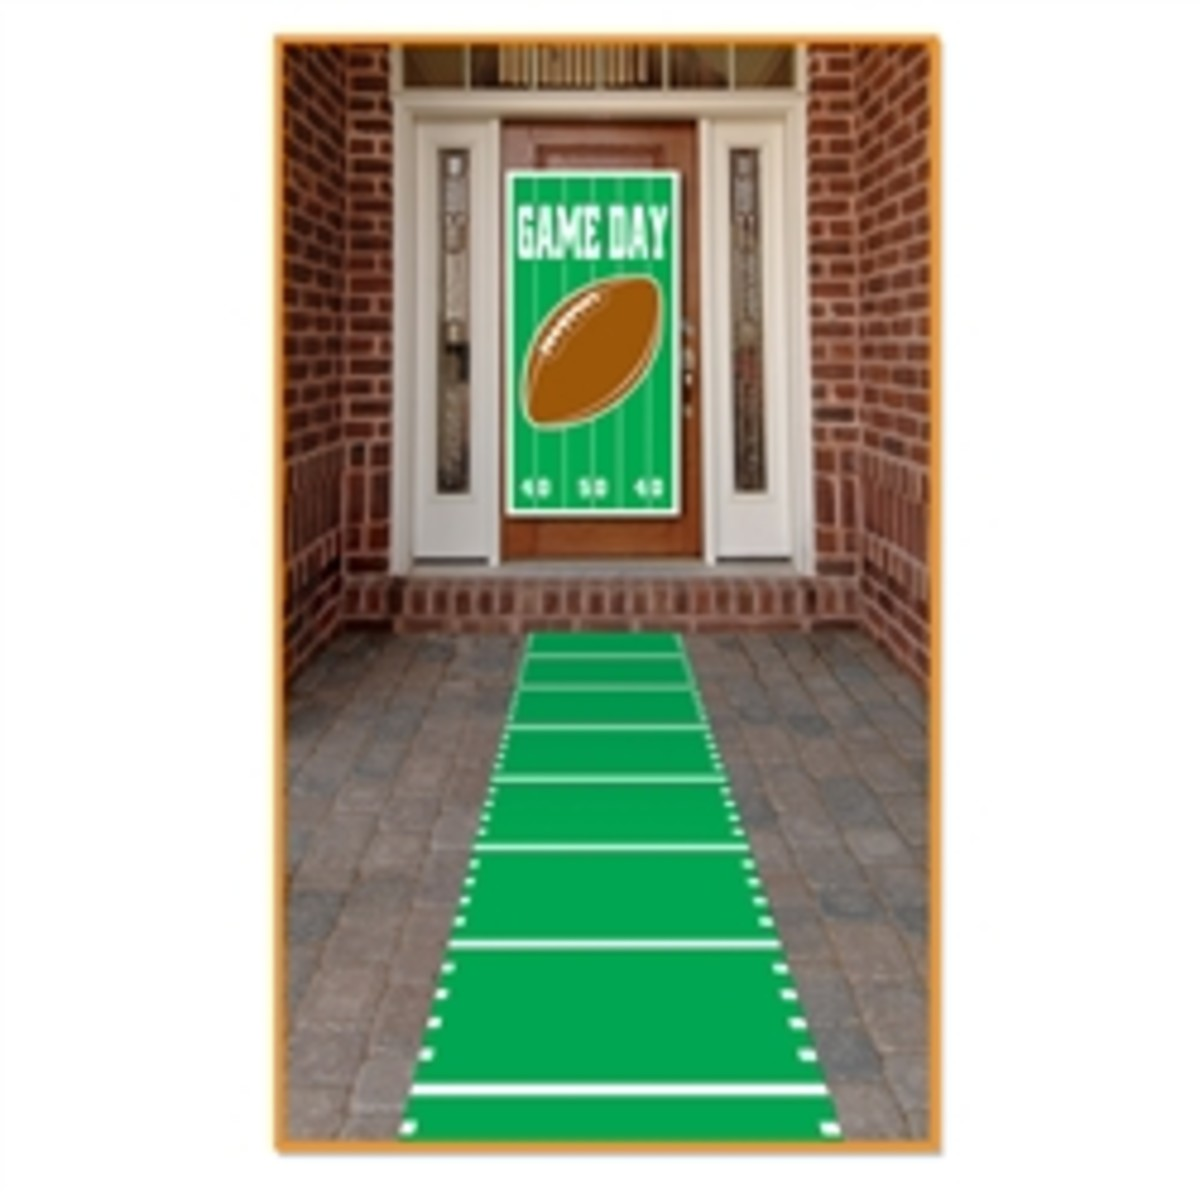 football theme decorations at the front door in bright field green and white yard markings